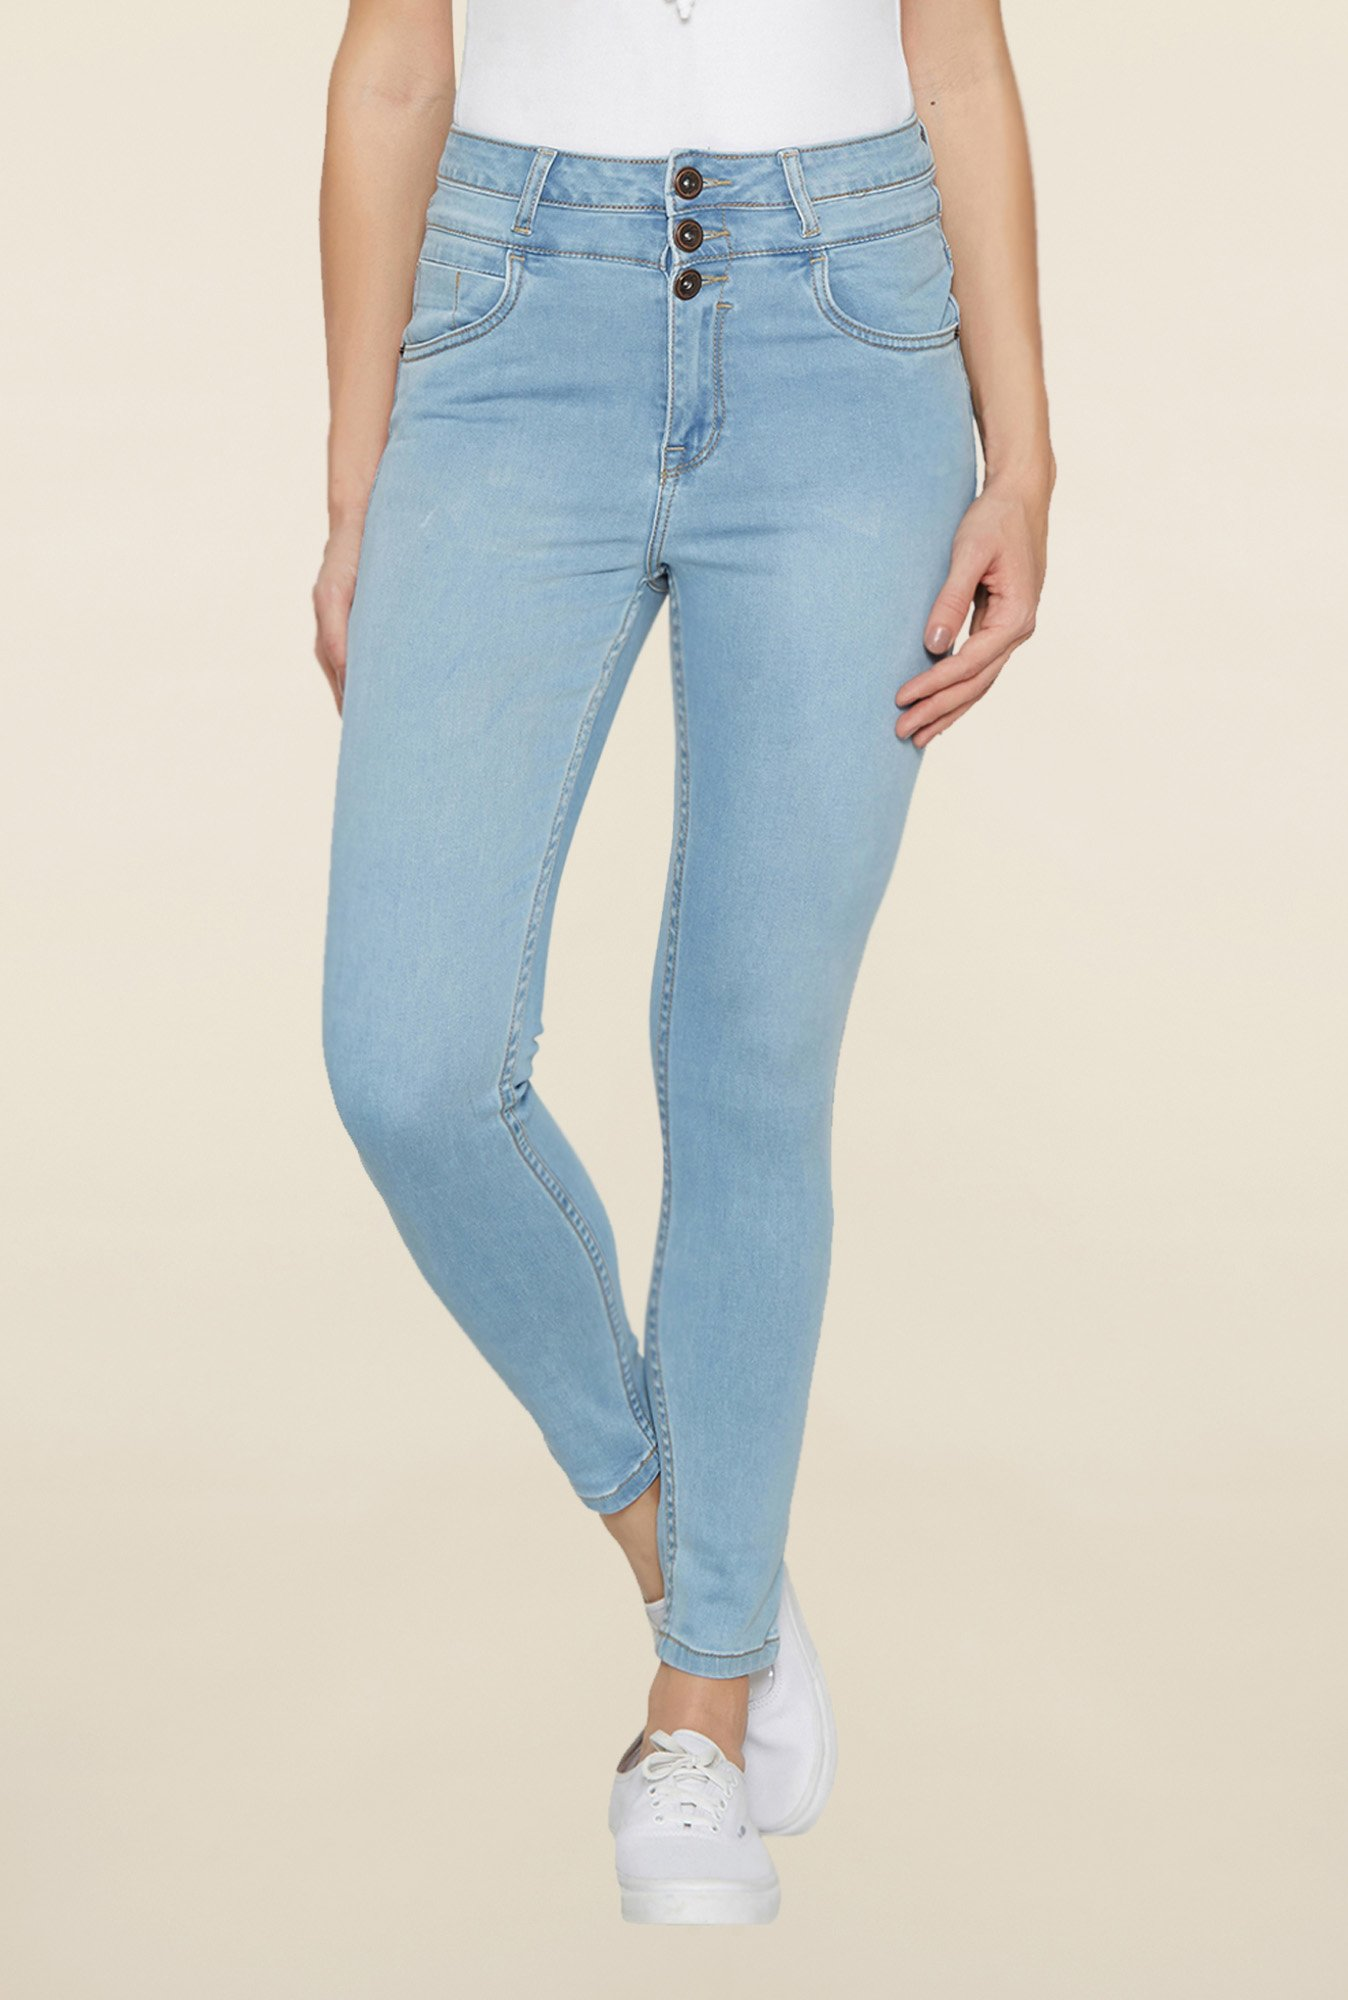 Globus Light Blue Raw Denim Jeans